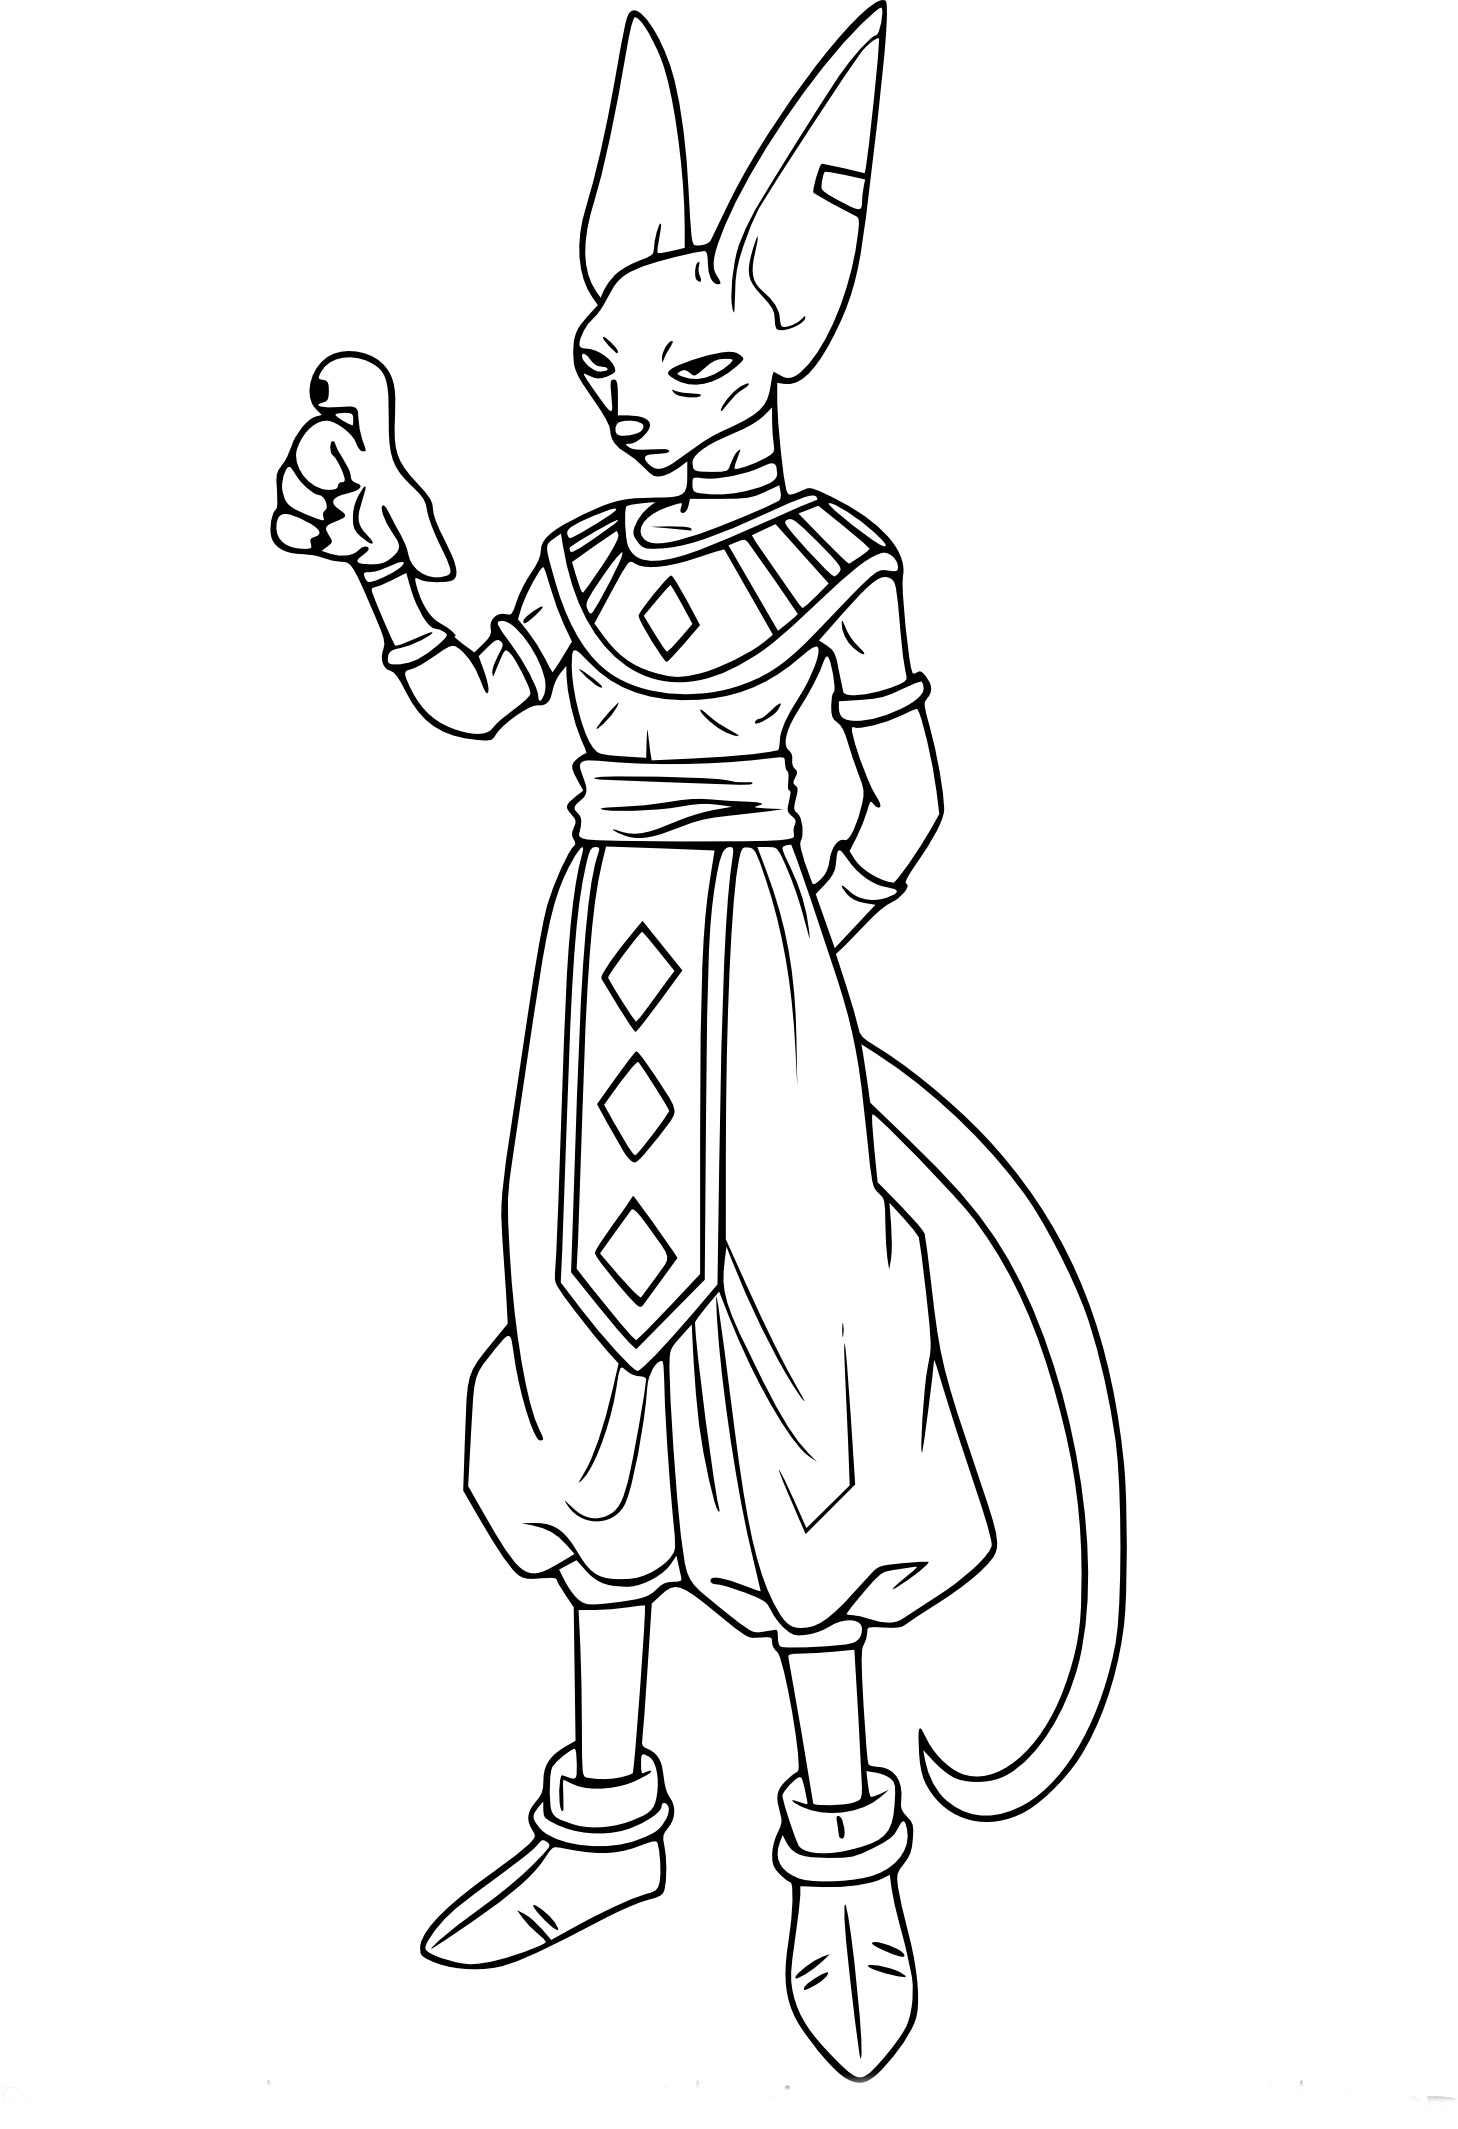 Coloriage Dragon Ball Z Beerus à Imprimer Sur Coloriages Info